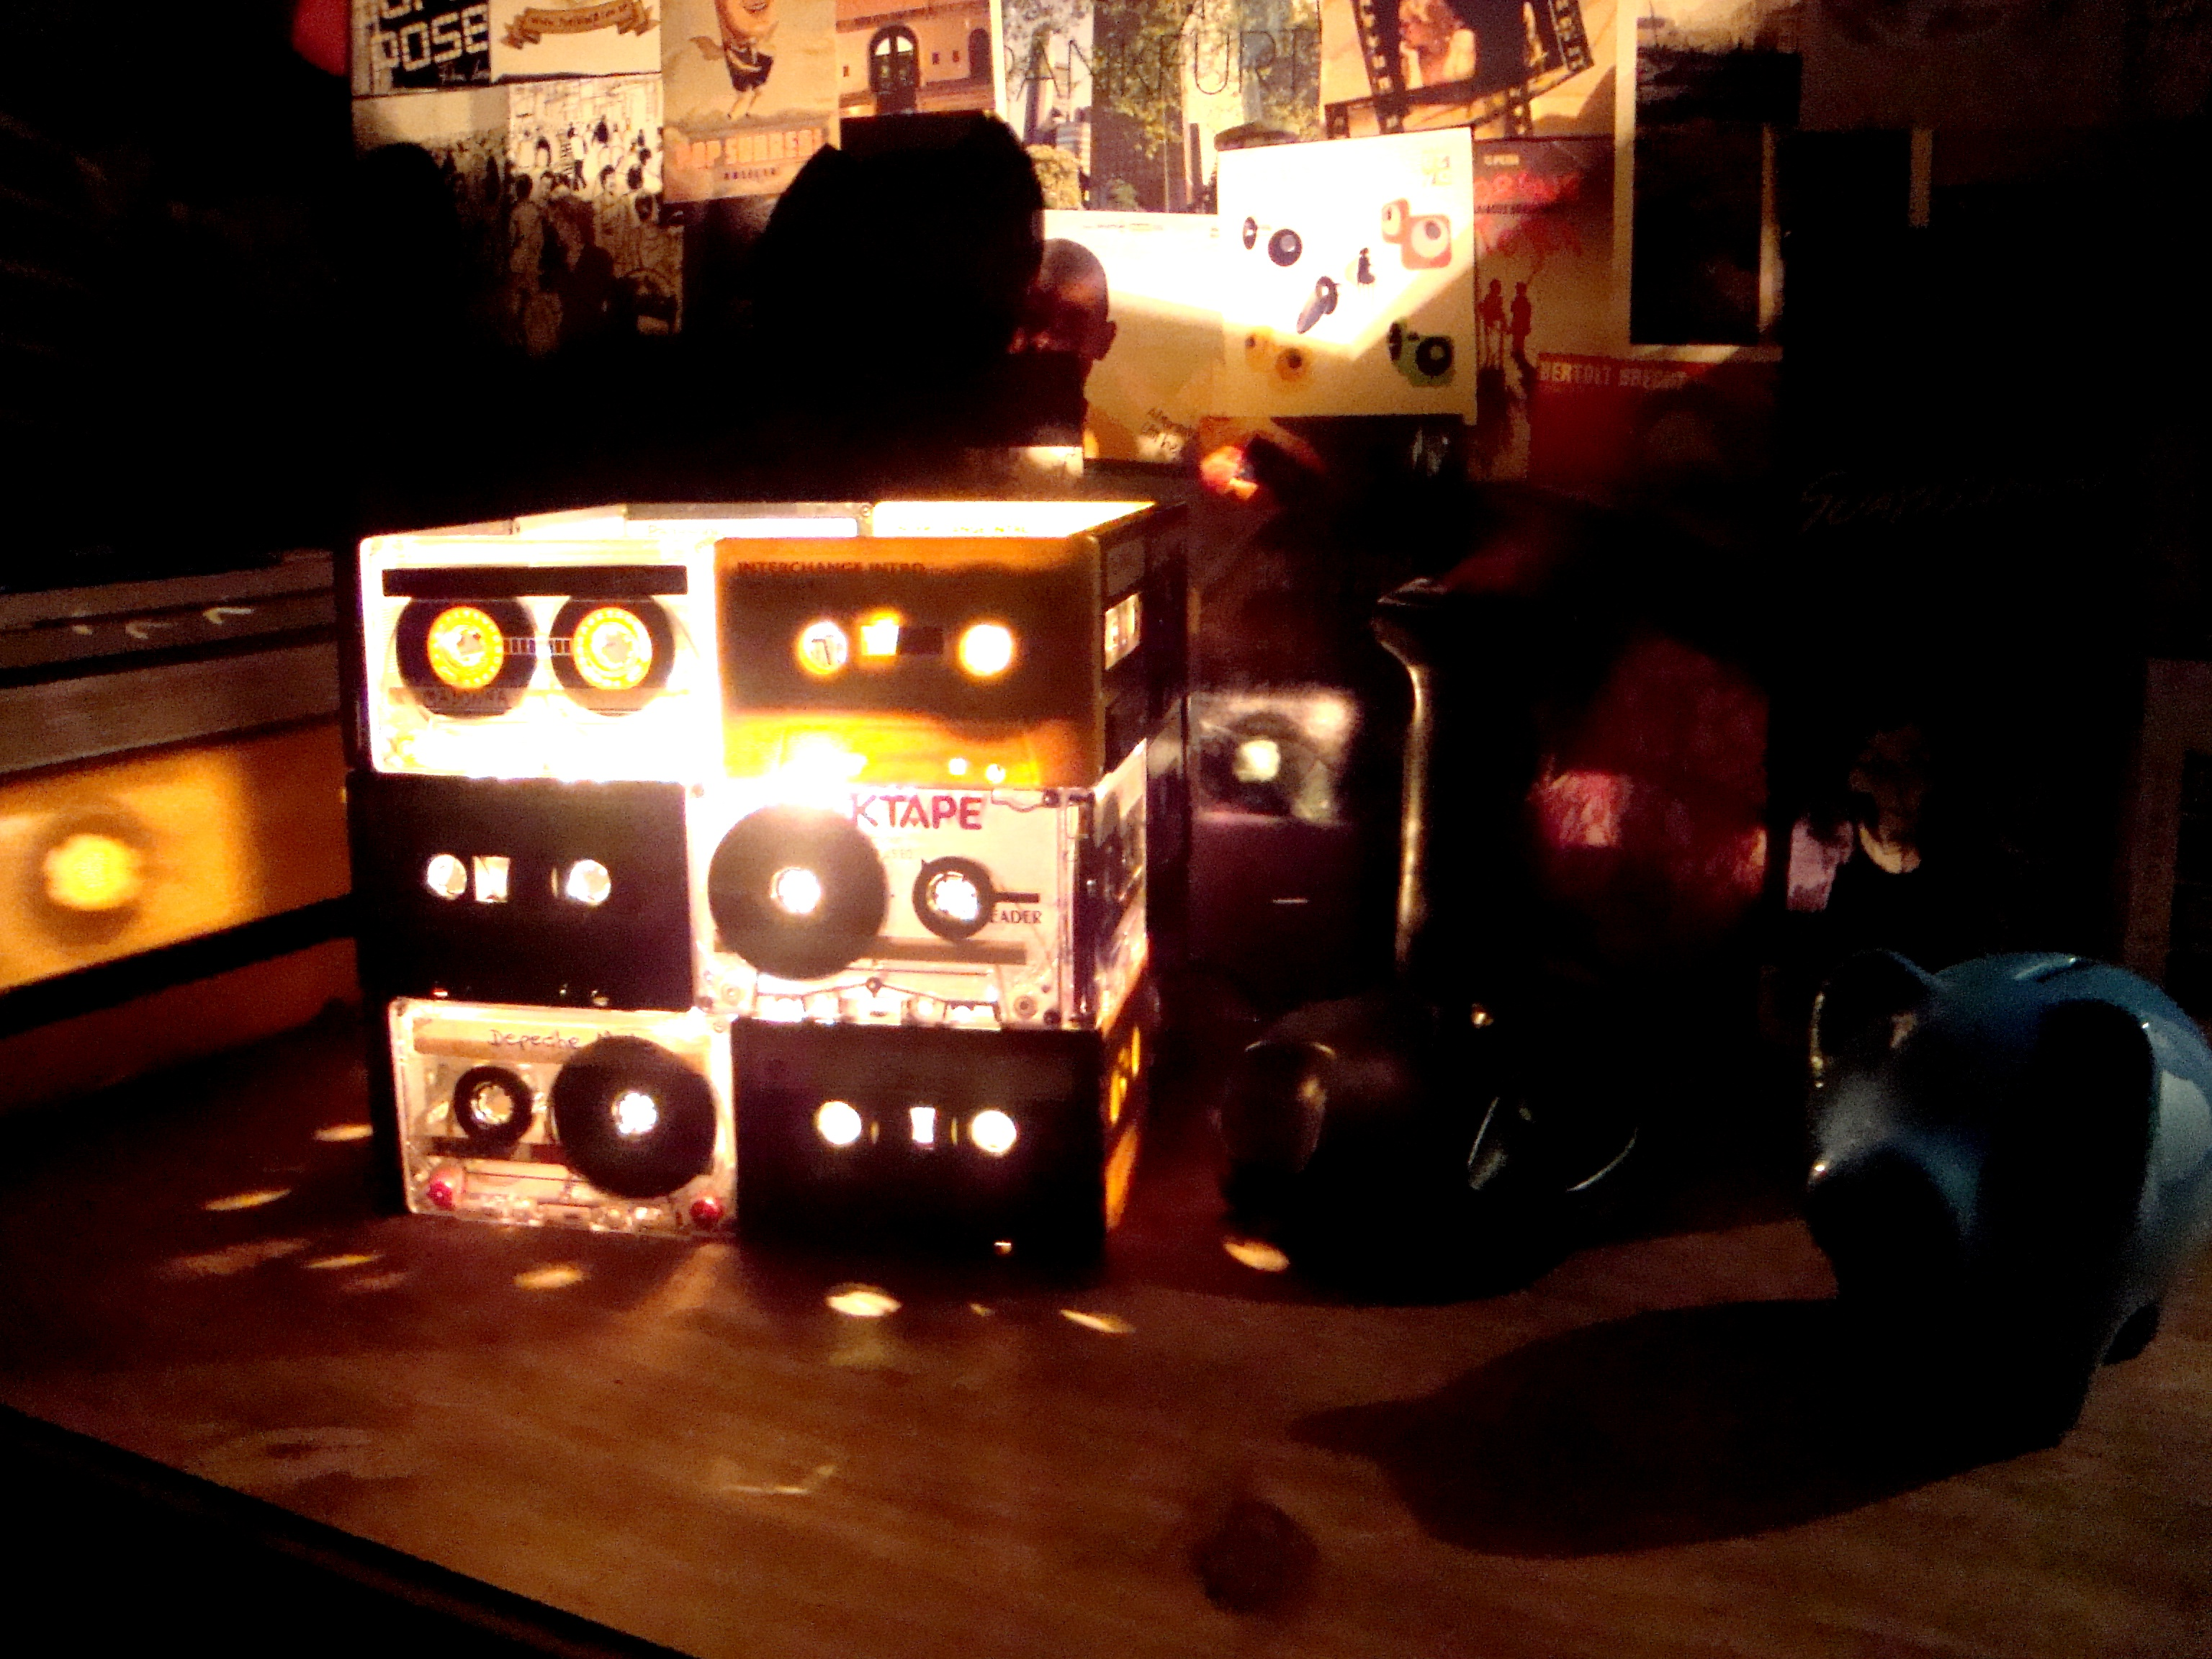 Retro tribute - CaSsette TaPes LamP with Joystick SwitcH